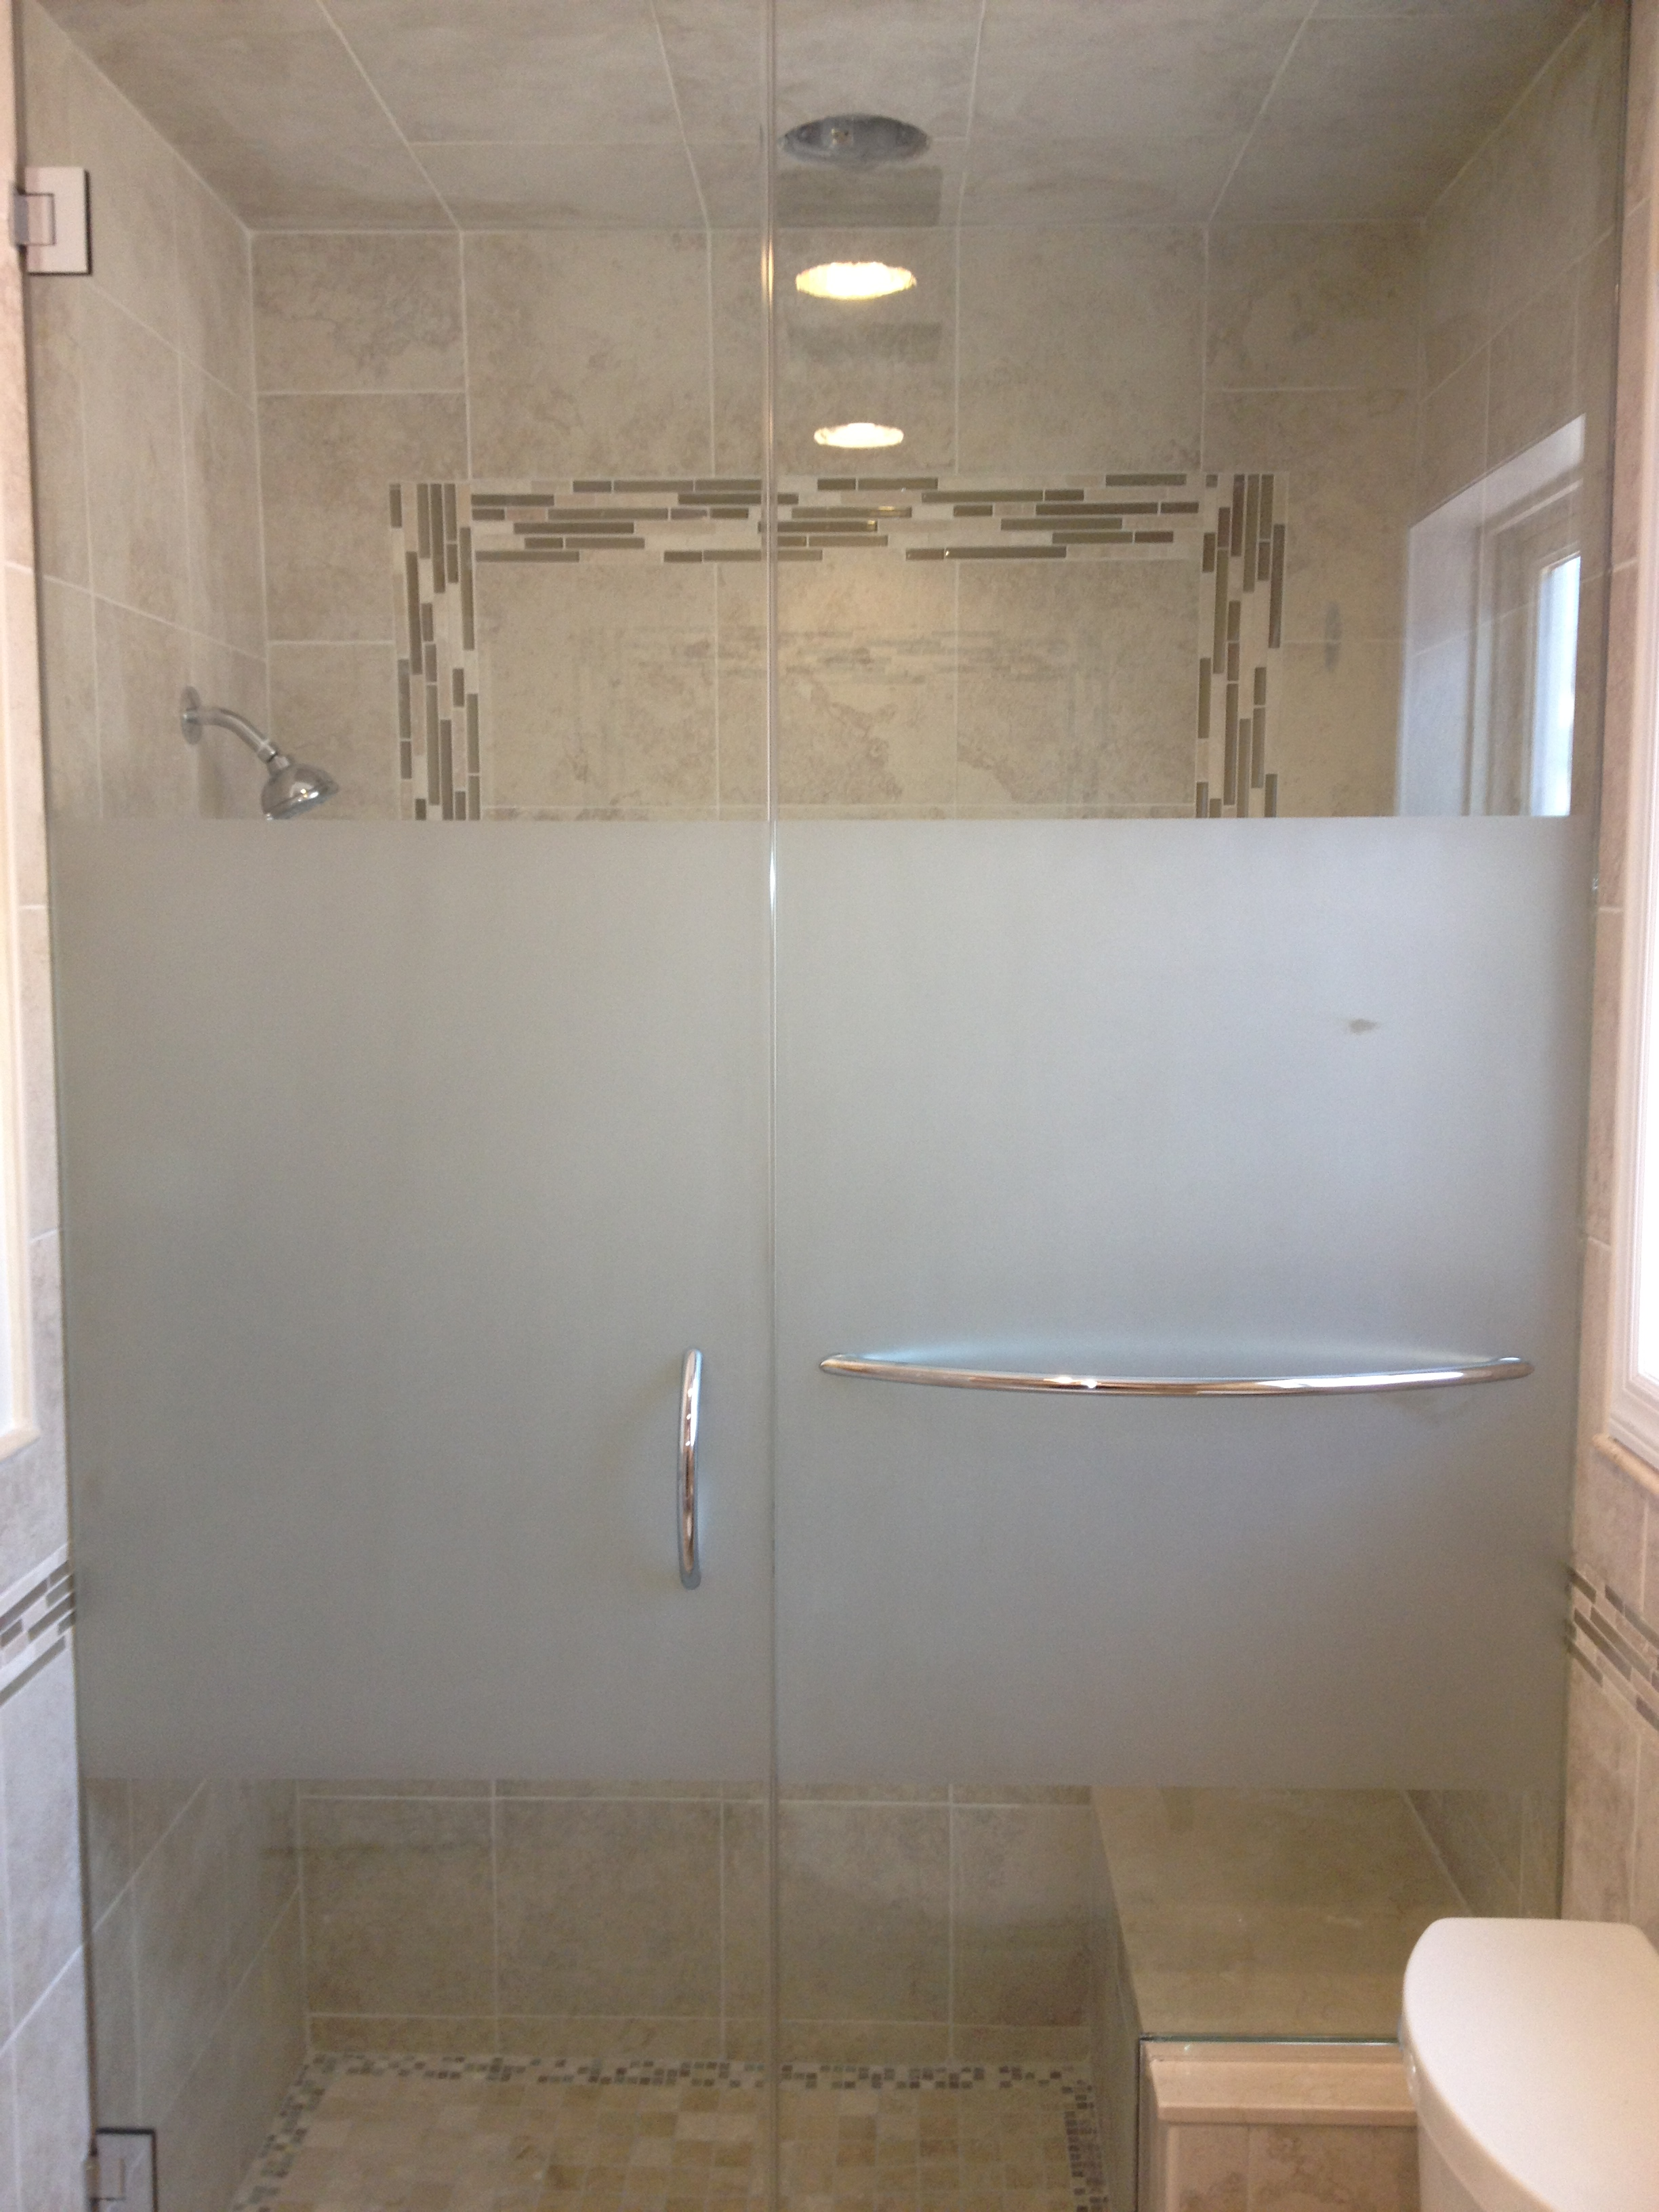 Frosted units new images mirror glass co Bathroom glass doors design